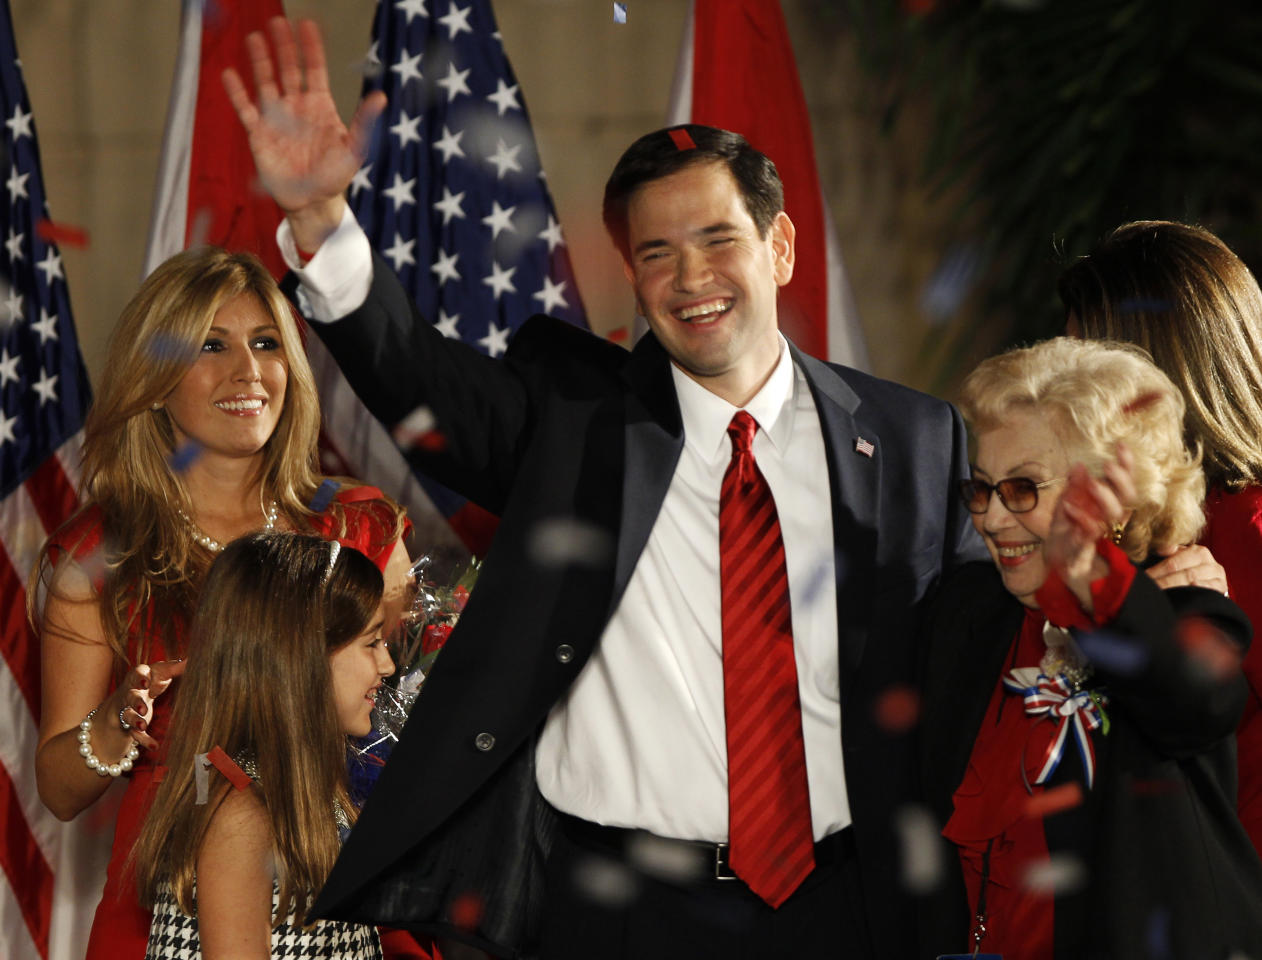 U.S. Republican Senate candidate Marco Rubio (C) waves as he leaves the stage with his wife Jeanette (L), mother Oria (R), and daughter Amanda, during an outdoor victory celebration at the Biltmore Hotel in Coral Gables, Florida November 2, 2010. REUTERS/Hans Deryk